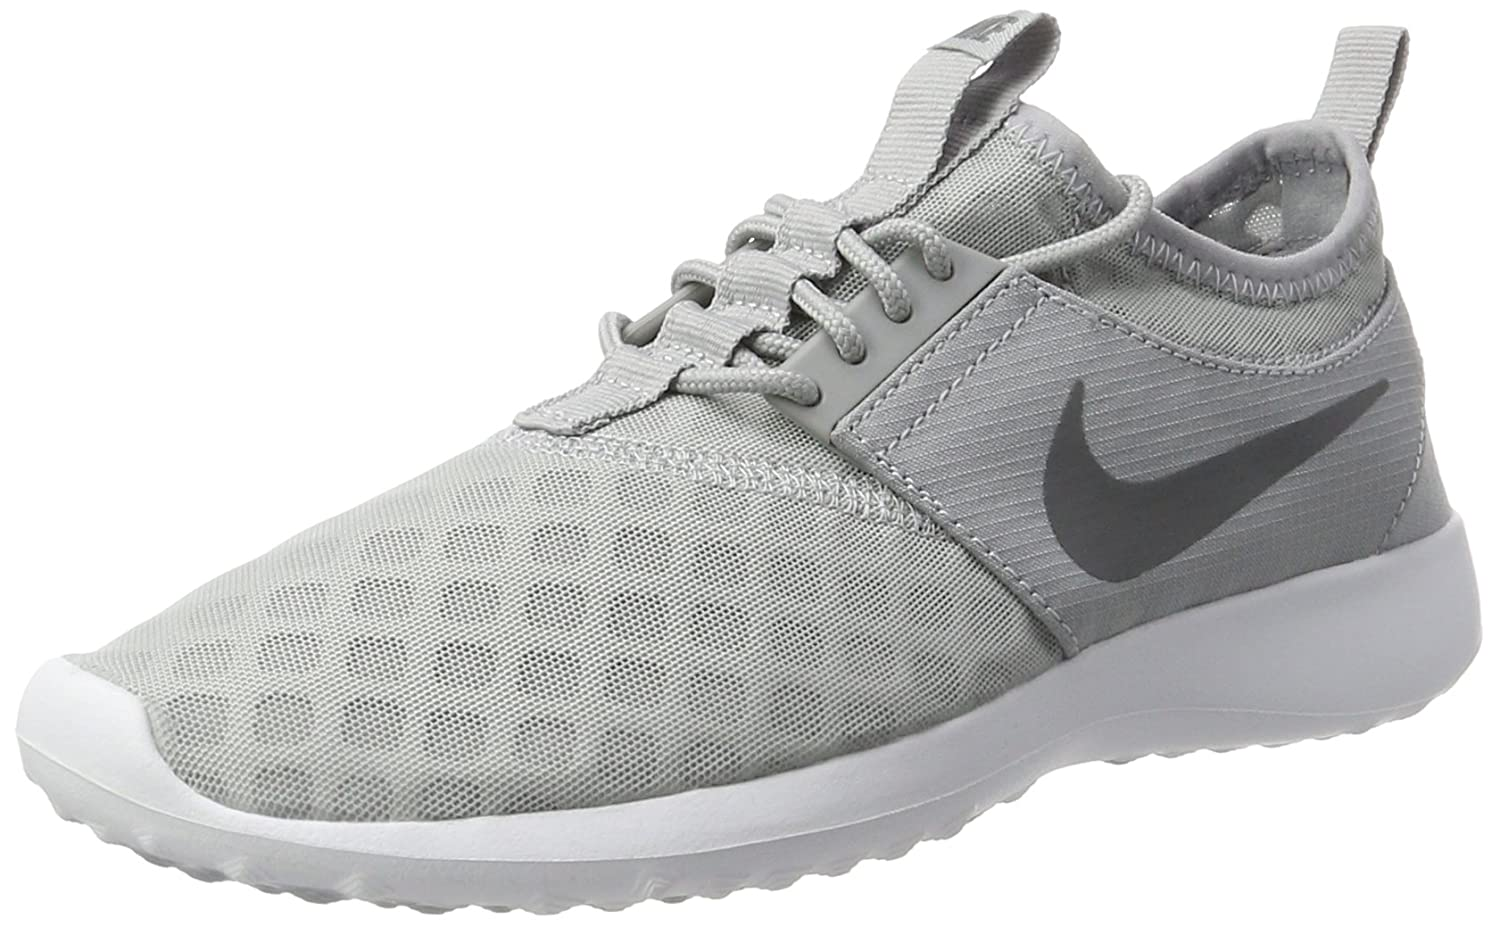 NIKE Women's Juvenate Running Shoe B01F07SAOA 6 B(M) US|Wolf Grey/Cool Grey/White